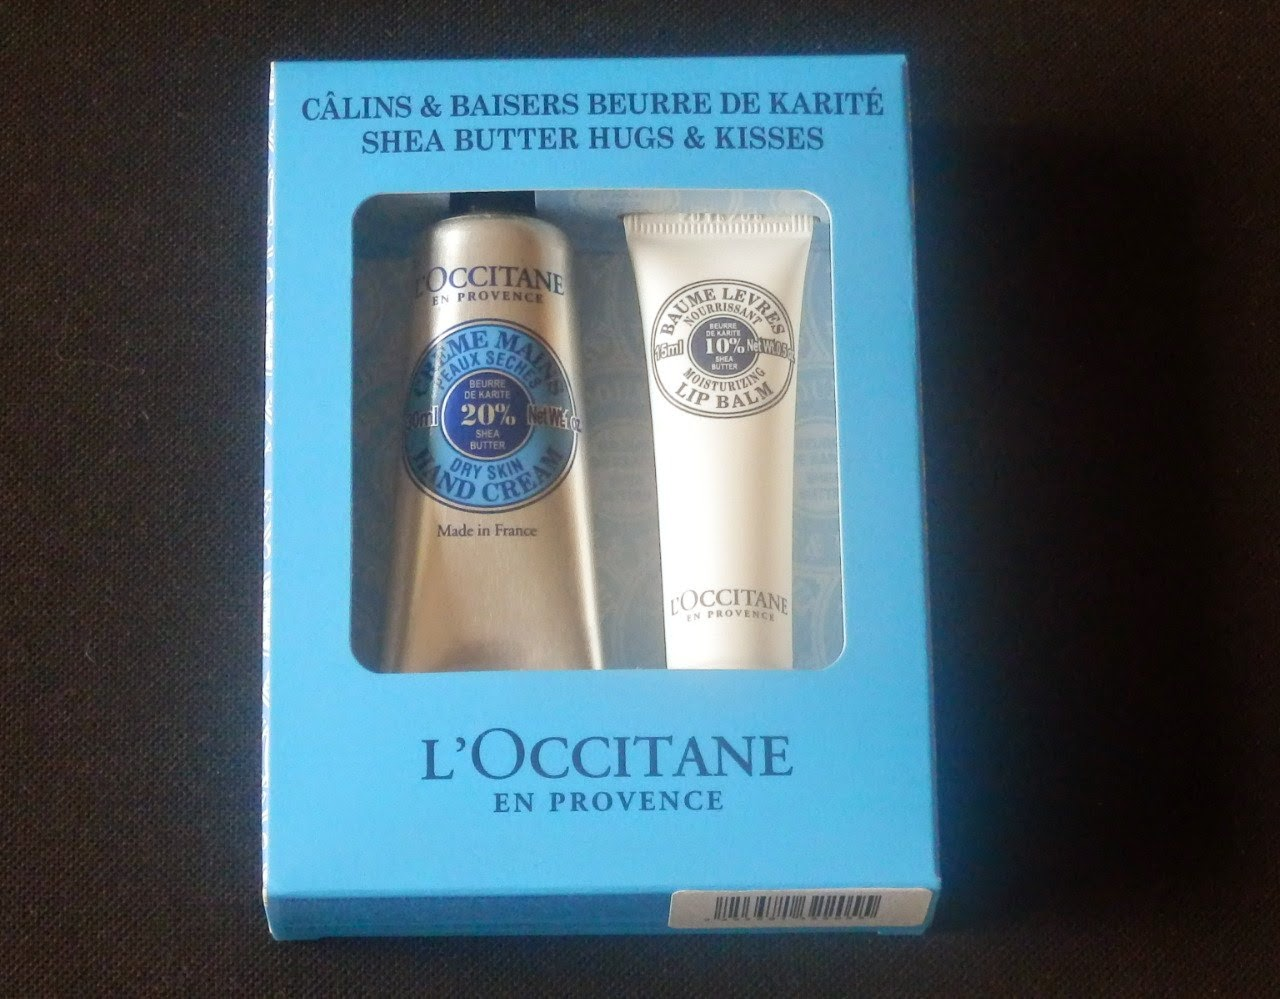 L'Occitane Shea Butter Hugs & Kisses